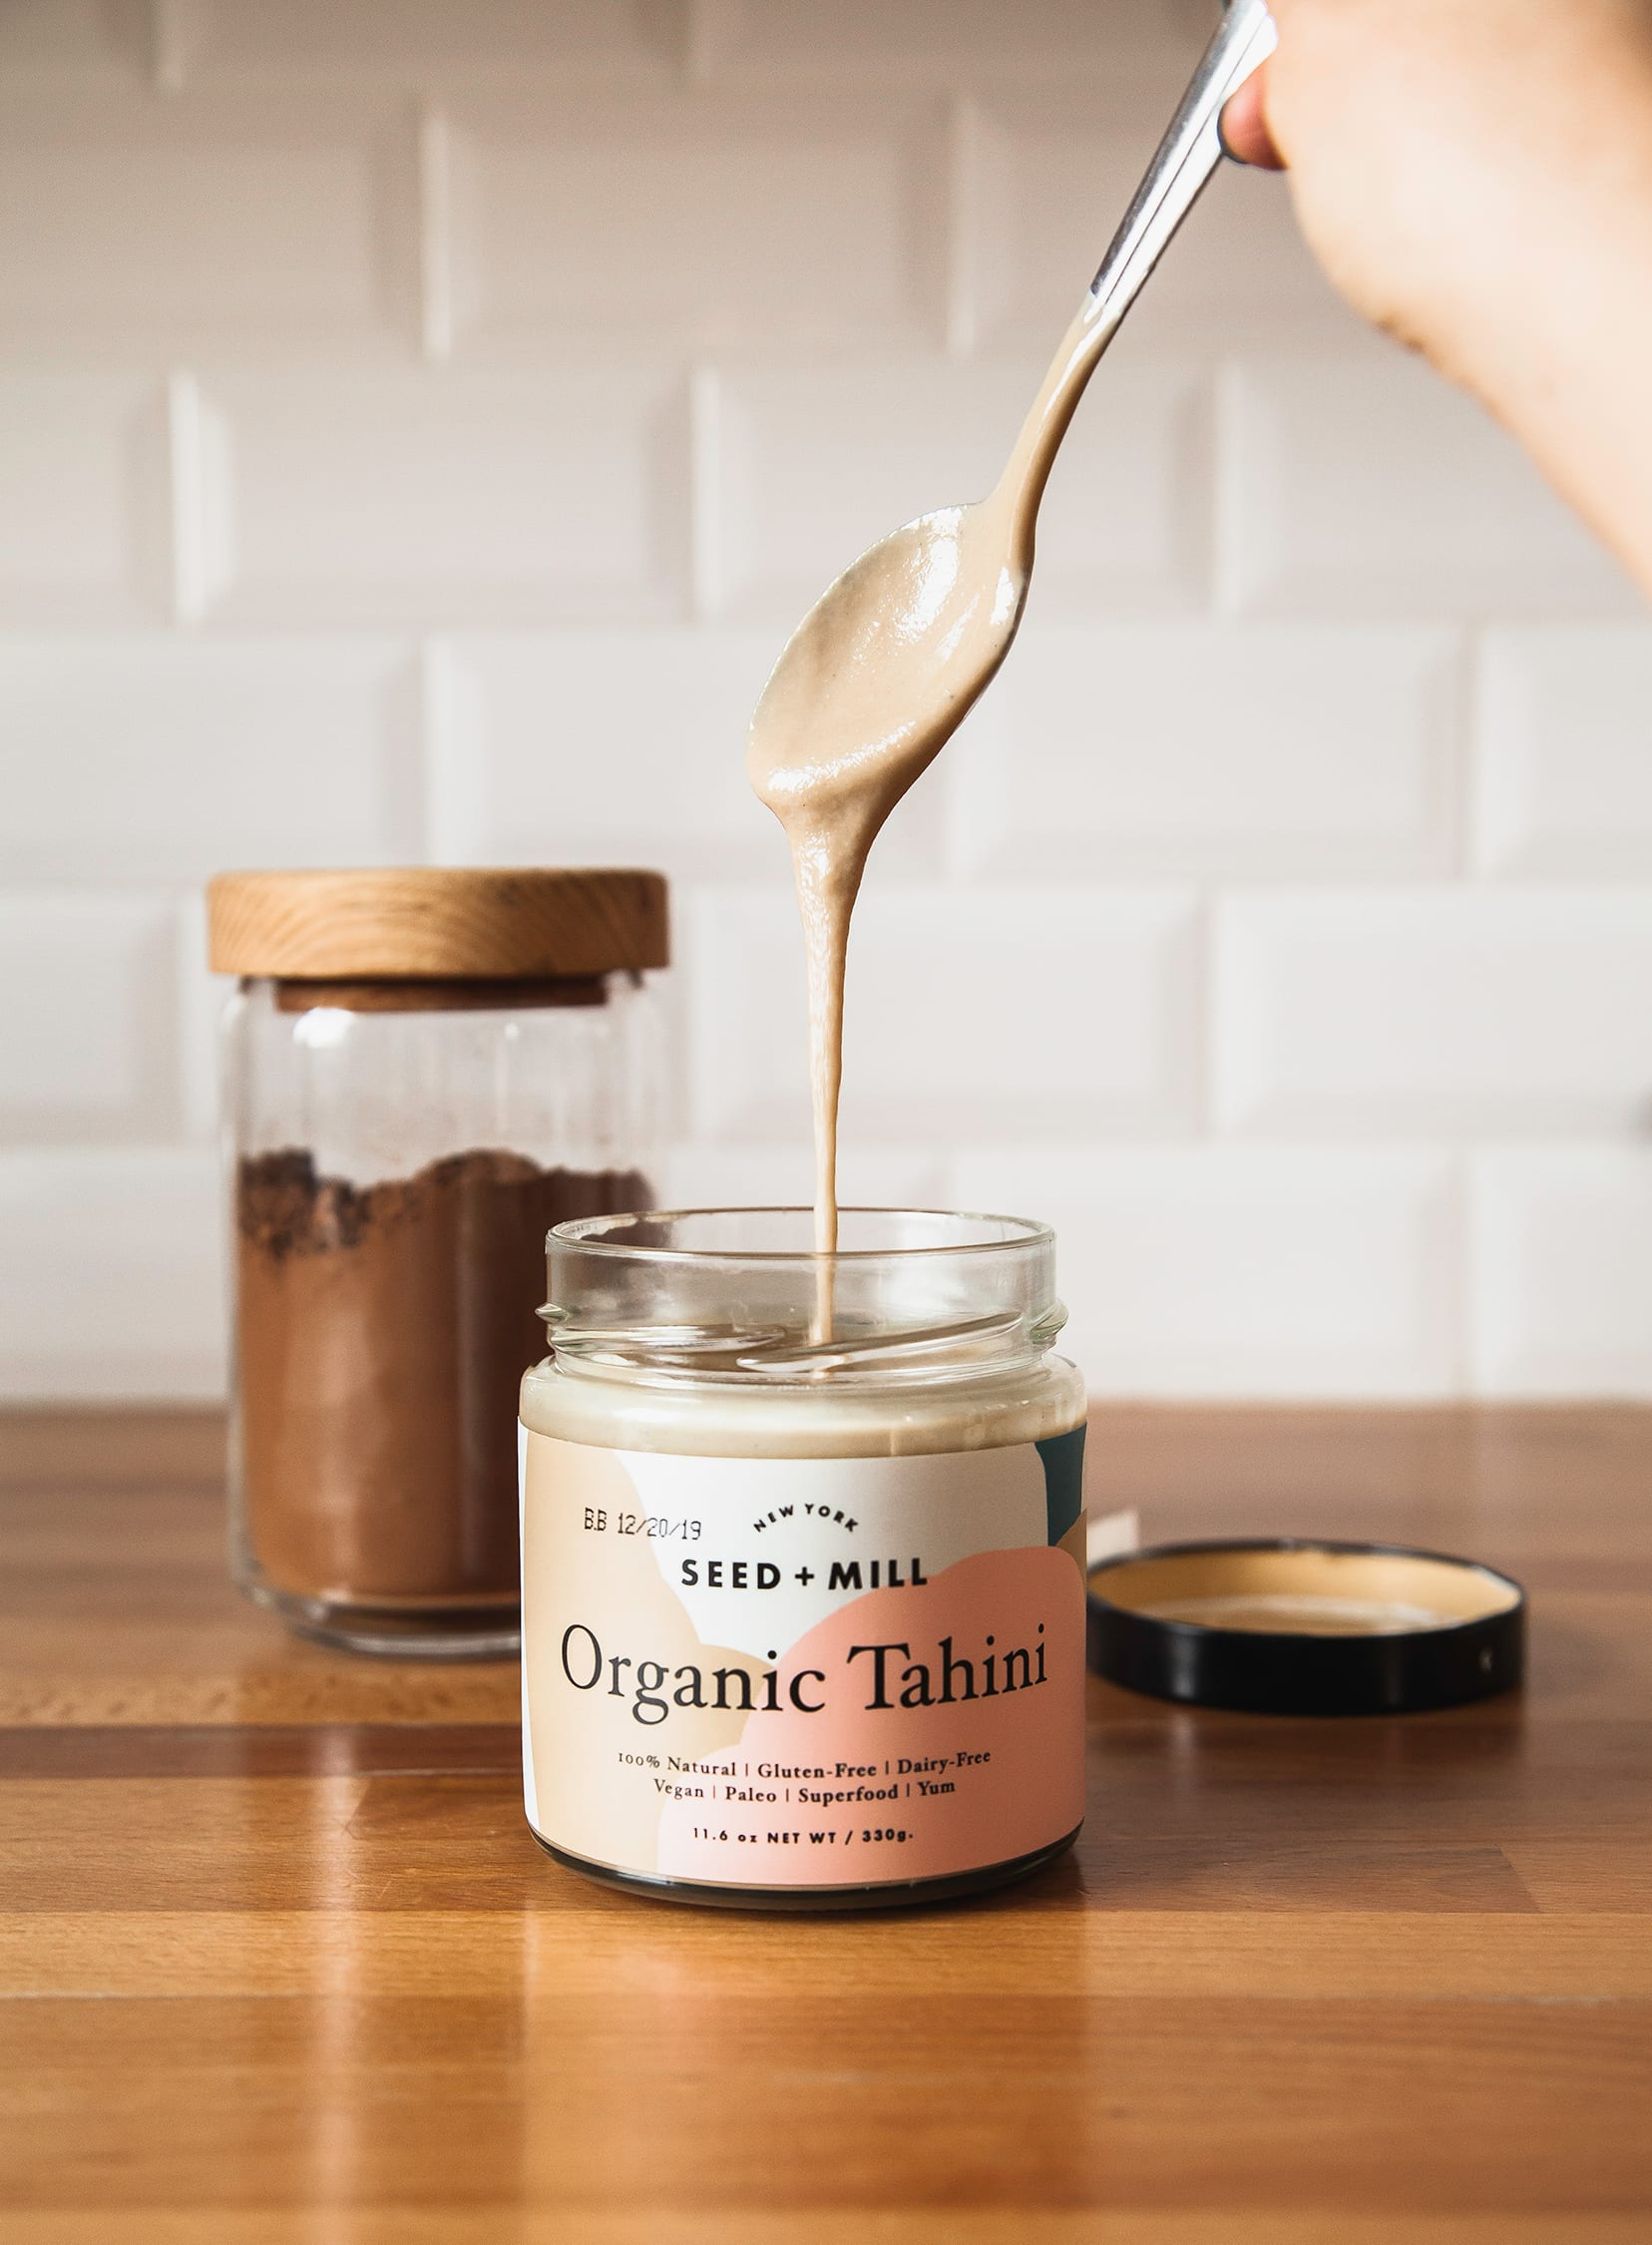 Image shows a spoon lifting out of a jar of tahini with tahini dripping off of the spoon.